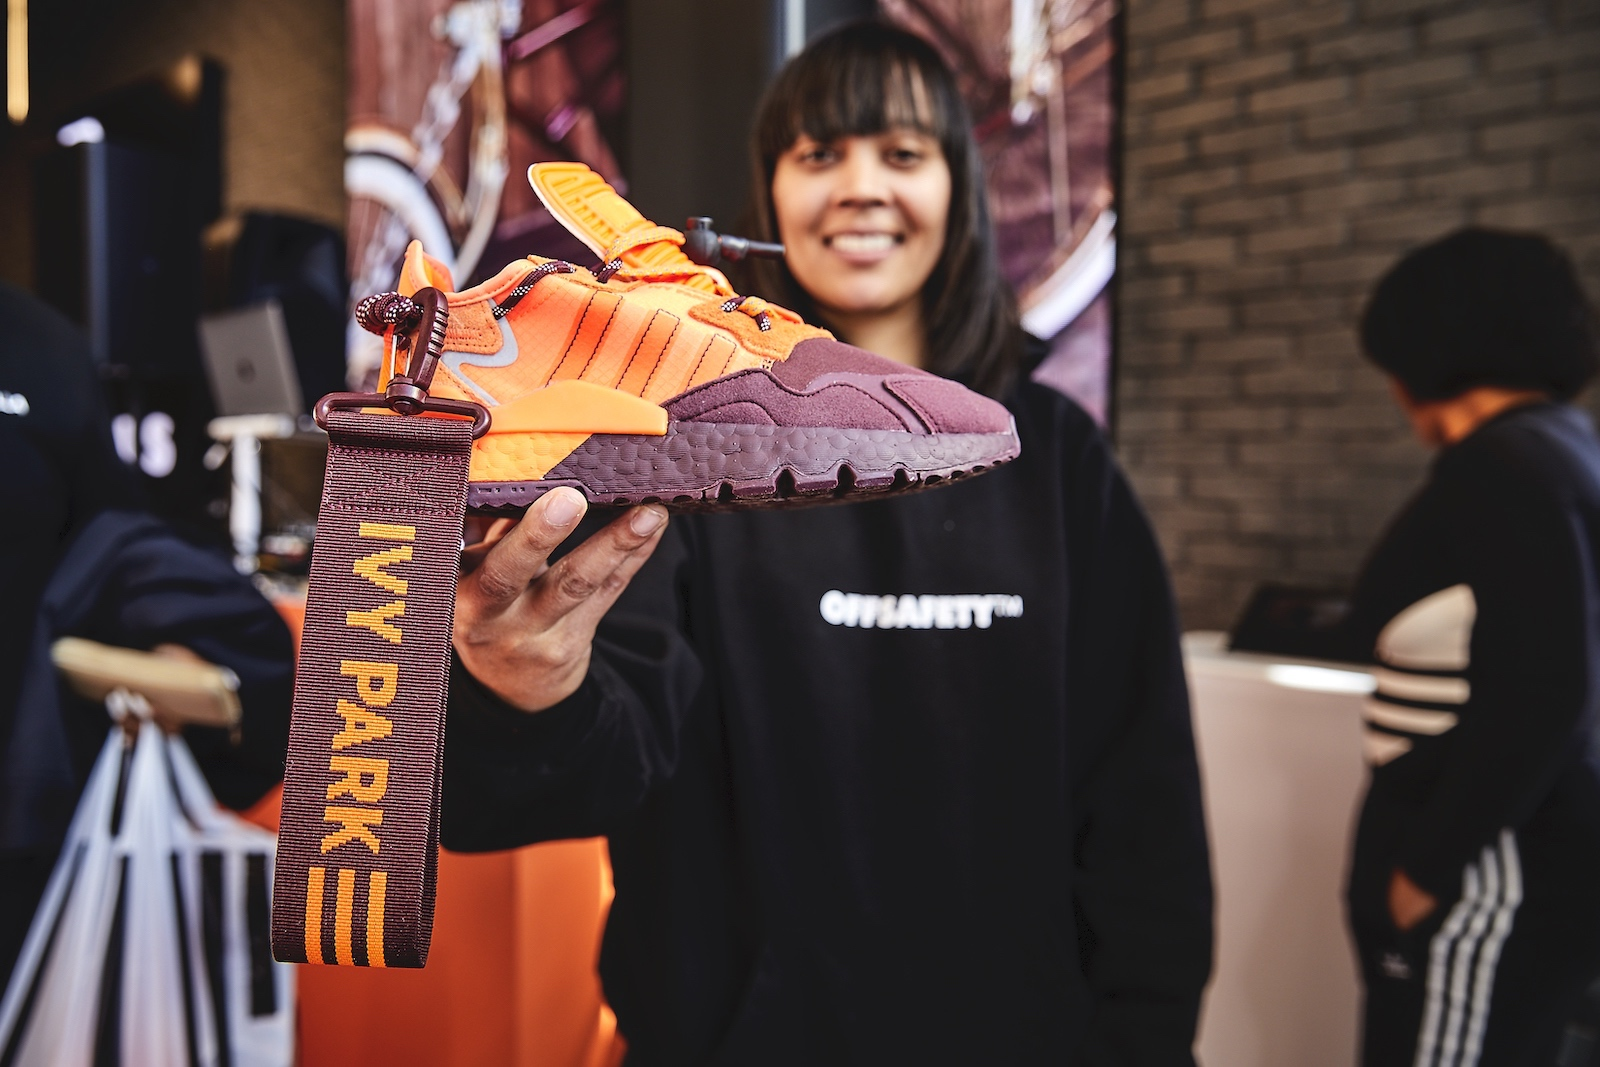 A guest holds up an orange and burgundy Ivy Park sneaker.